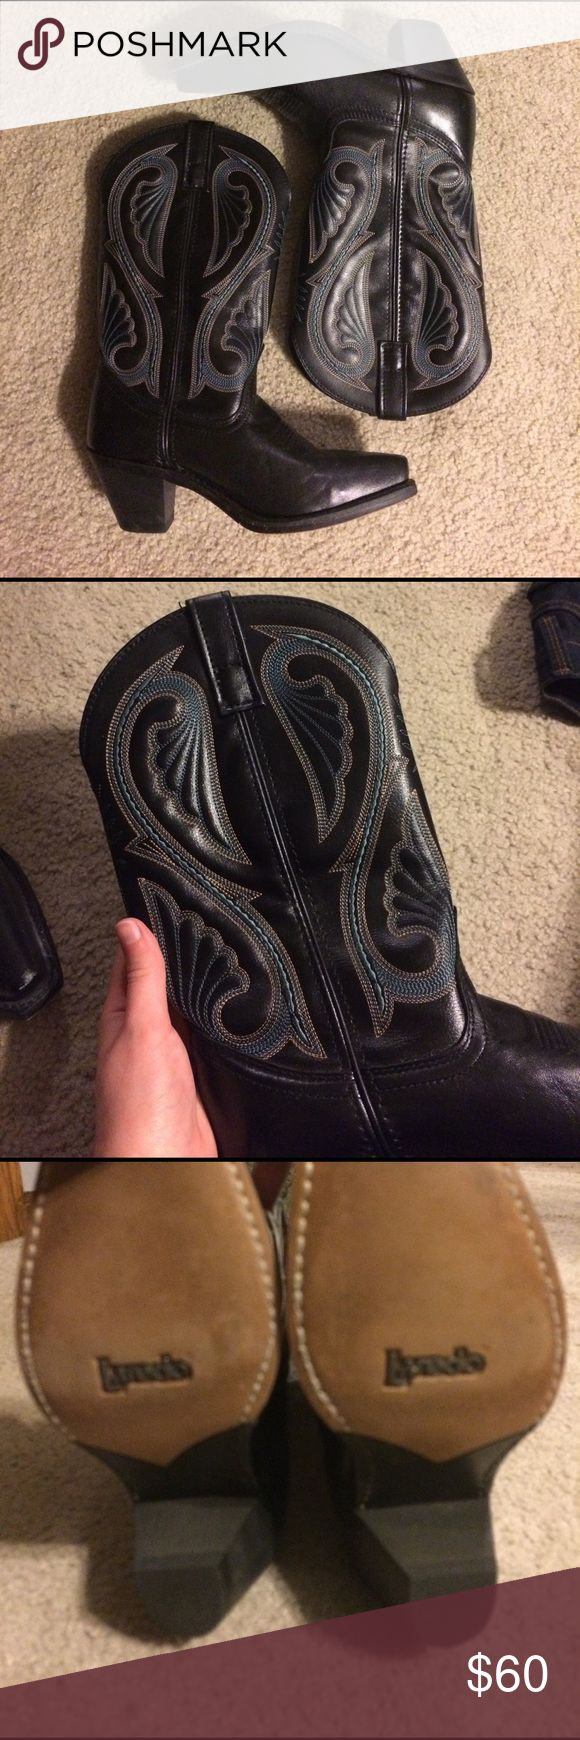 Black & teal Laredo cowboy boots! Brand new authentic Laredo boots with teal detail! Purchased from this site, but never worn cause they were too small on me! Will fit a size 6.5 or 7 Laredo Shoes Heeled Boots